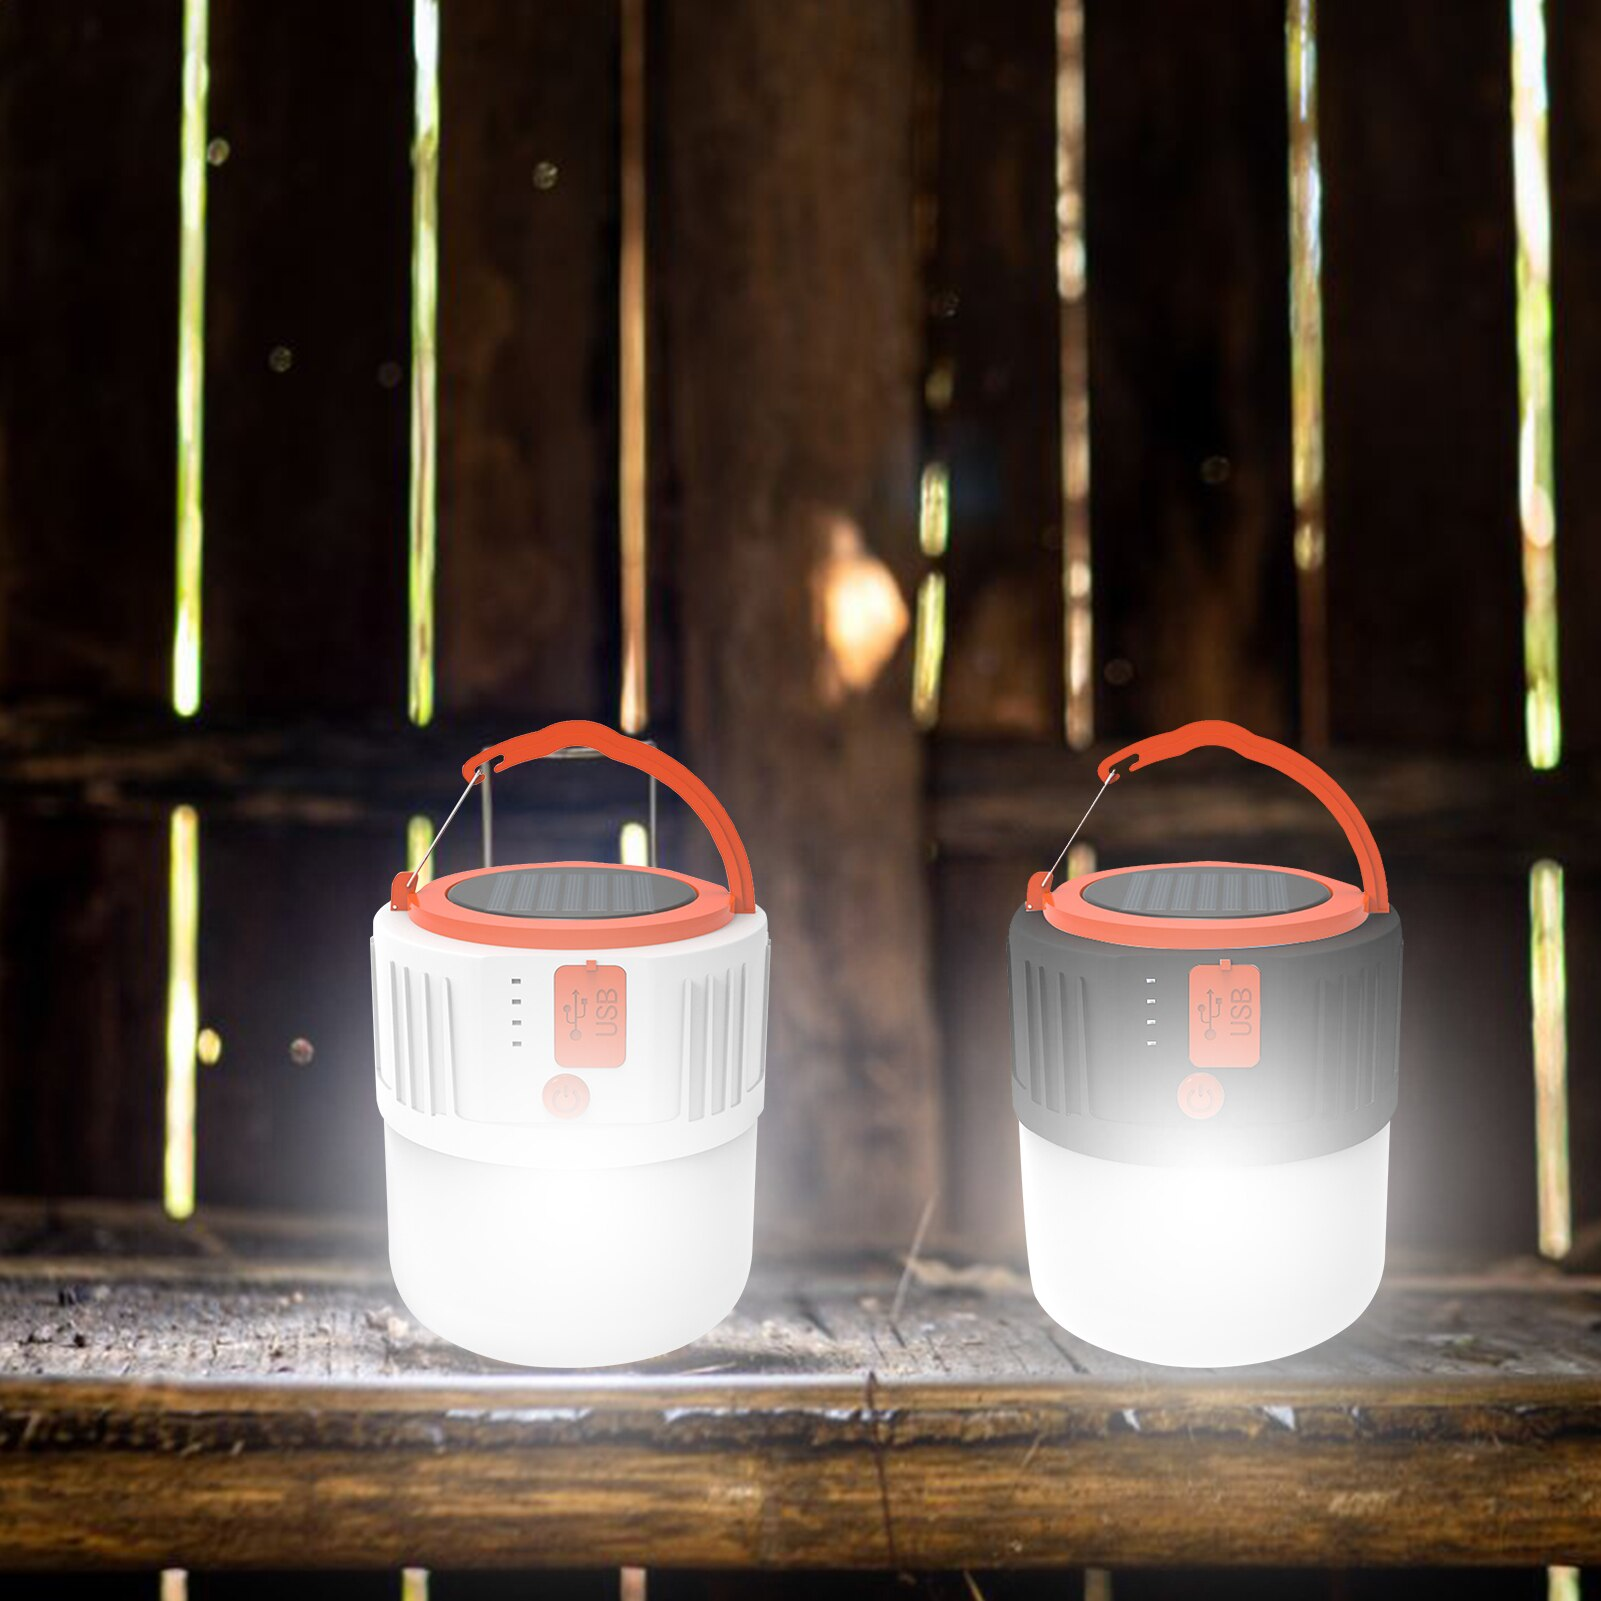 Multifunctional outdoor emergency light, 24 LED bulbs, built-in 2400mAh rechargeable battery, flashlight with 5 modes